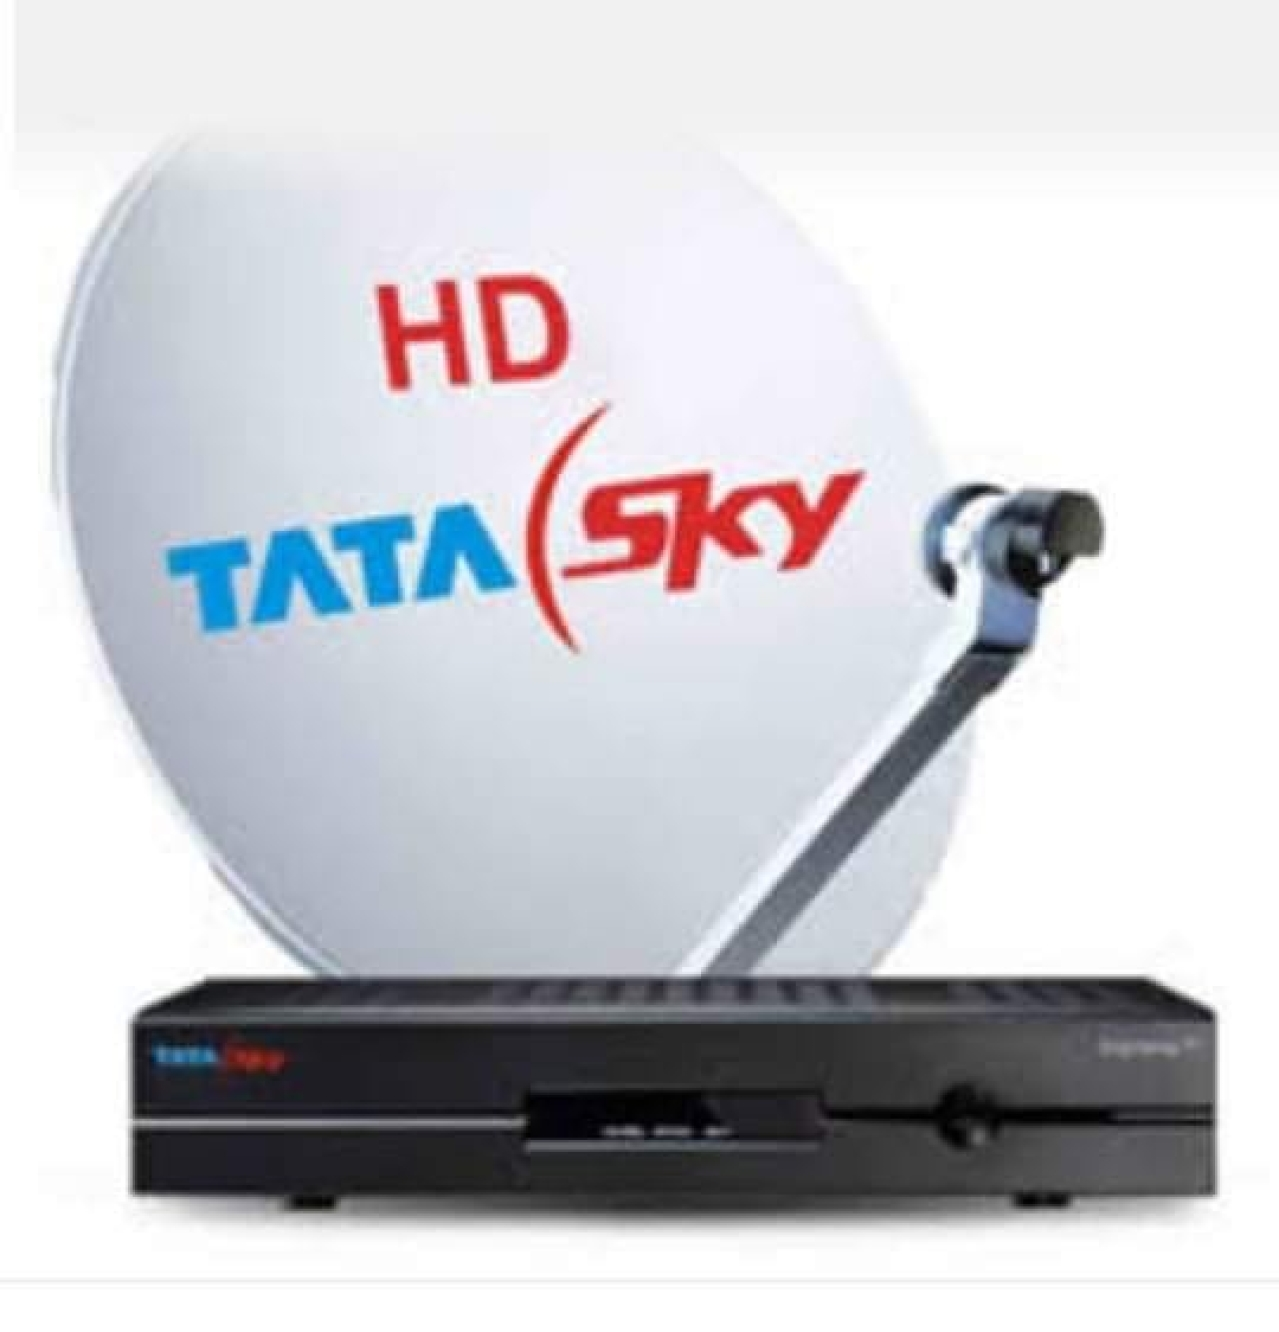 Delhi HC Warning To Tata Sky: Implement TRAI Tariff Order And Rules, Or Else Risk Possibility Of Action